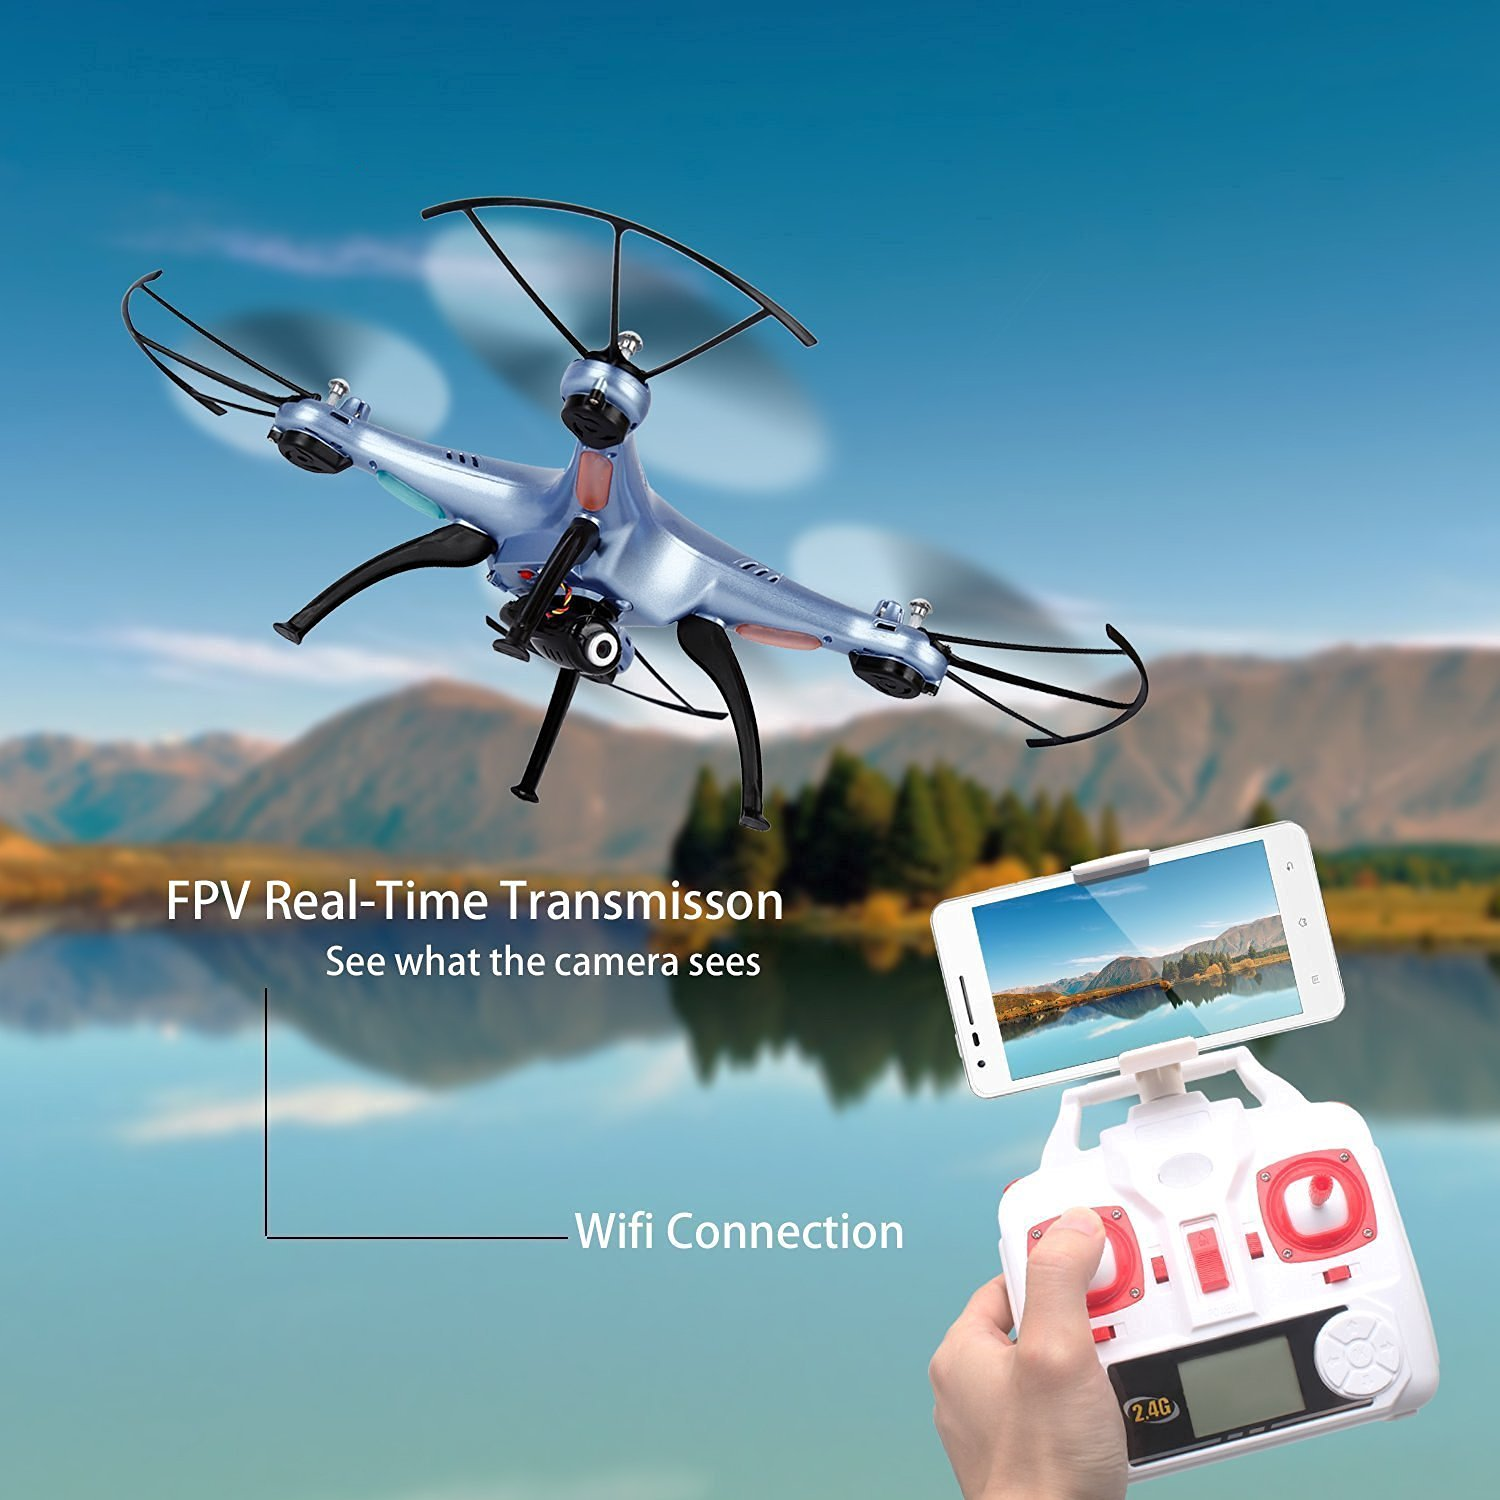 Syma X5hw 1 Wifi Fpv Drone With Hd Camera Live Video Altitude. 1 X Syma X5hw Quadcopter Wifi Camera Mobile Phone Retaining Clip Transmitter 4 Propeller Guide 2 Landing Gear Battery. Wiring. Drone Syma X5hw Wiring Diagram At Scoala.co